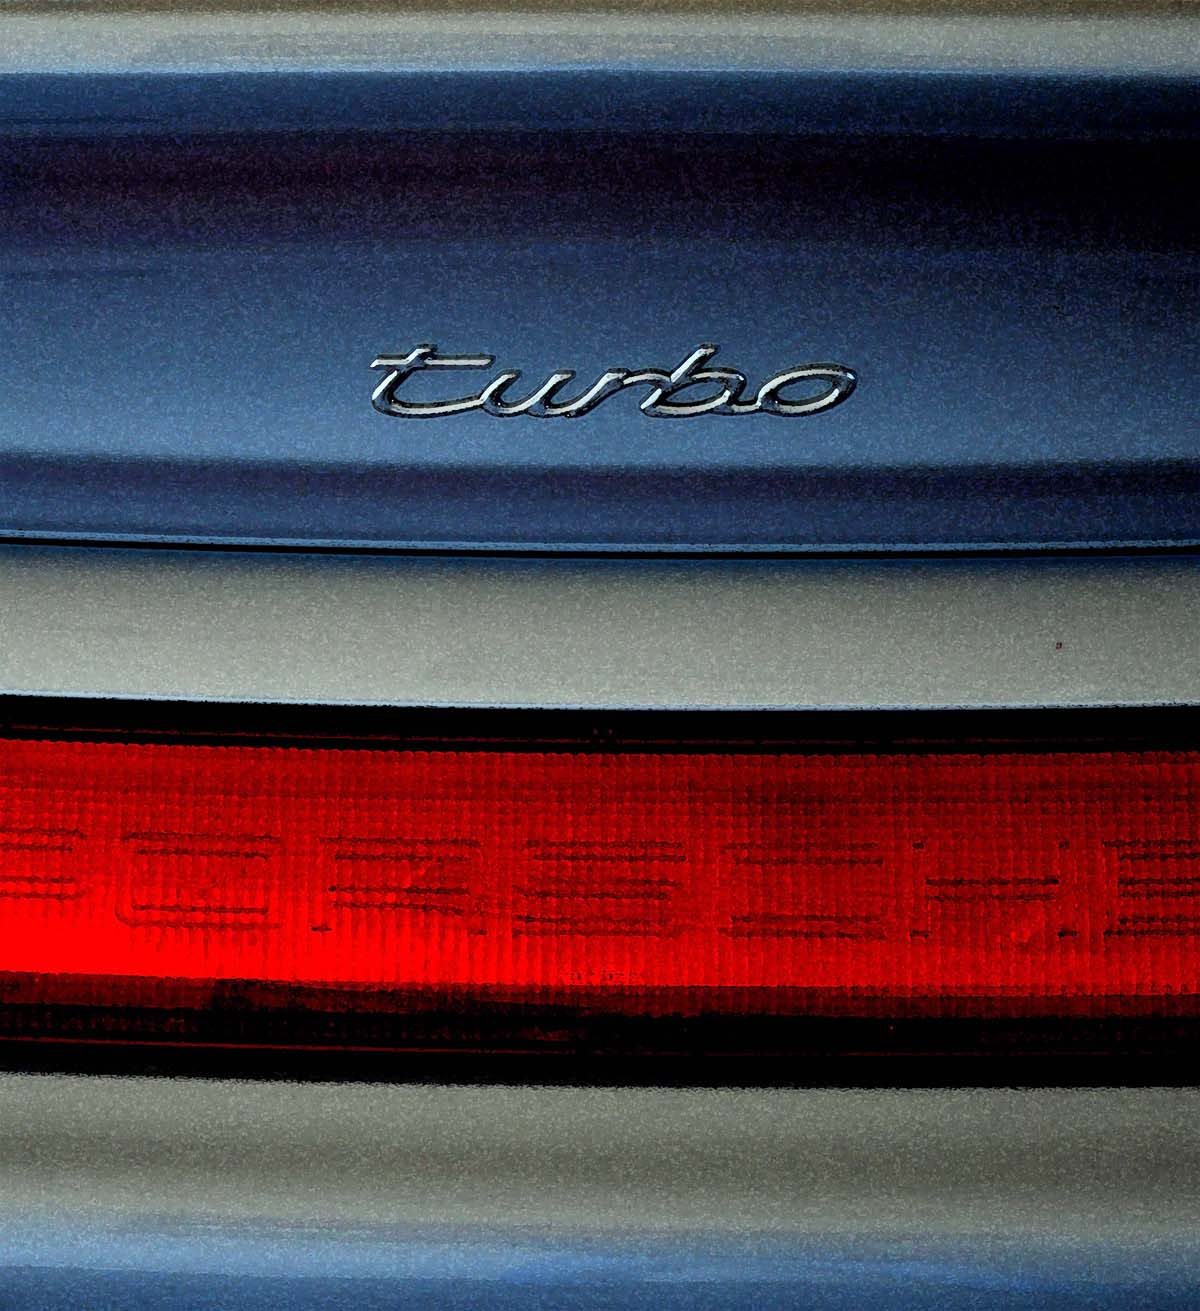 porsche 911 turbo, photo